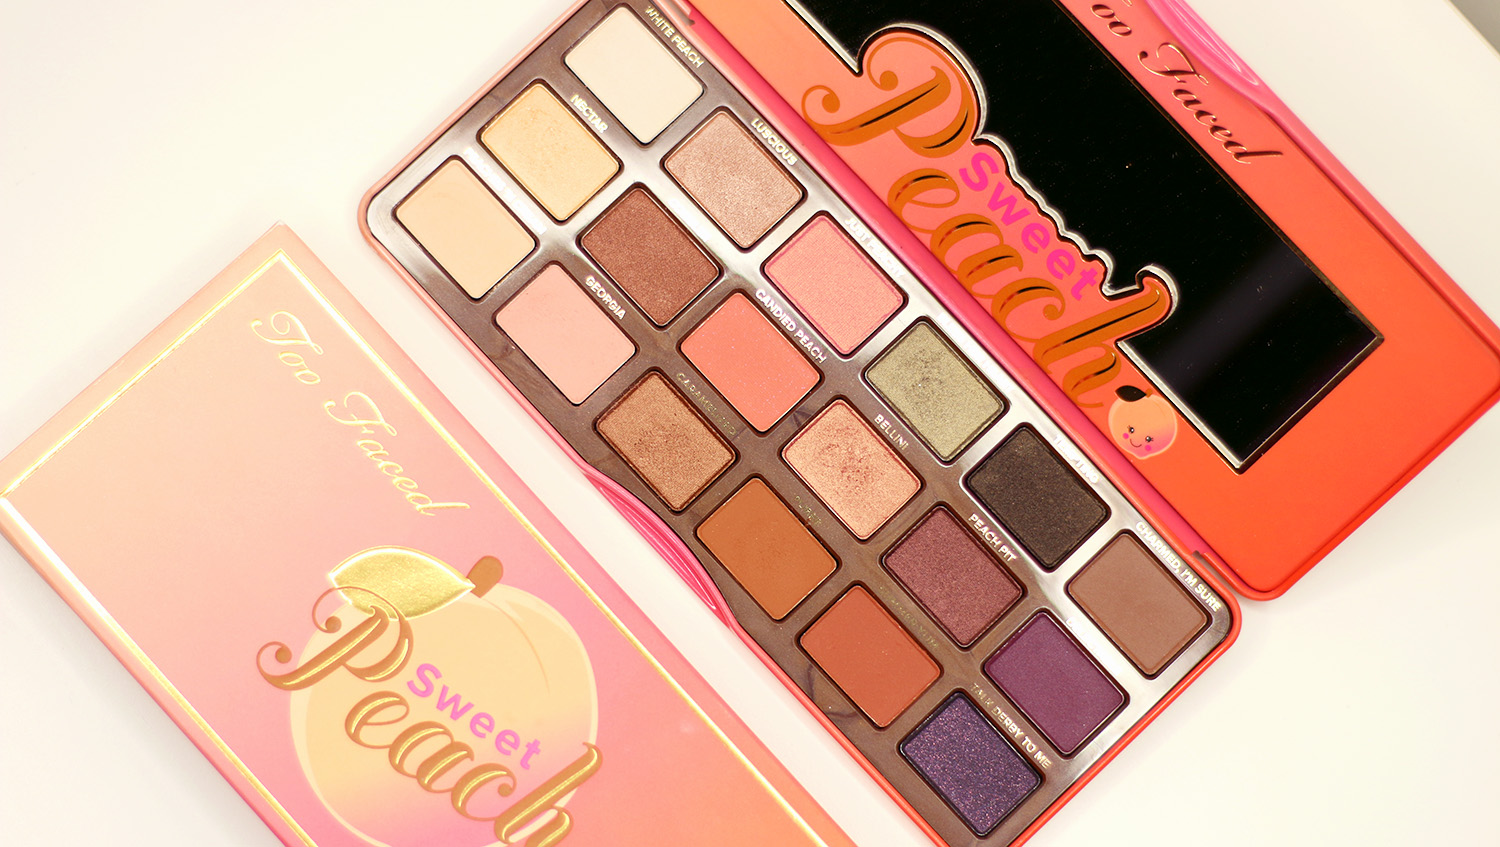 Too Faced, Sweet Peach, Lidschatten, Shopping Haul, USA, Video, Beautyblog, Berlin, Review, Advanceyourstyle